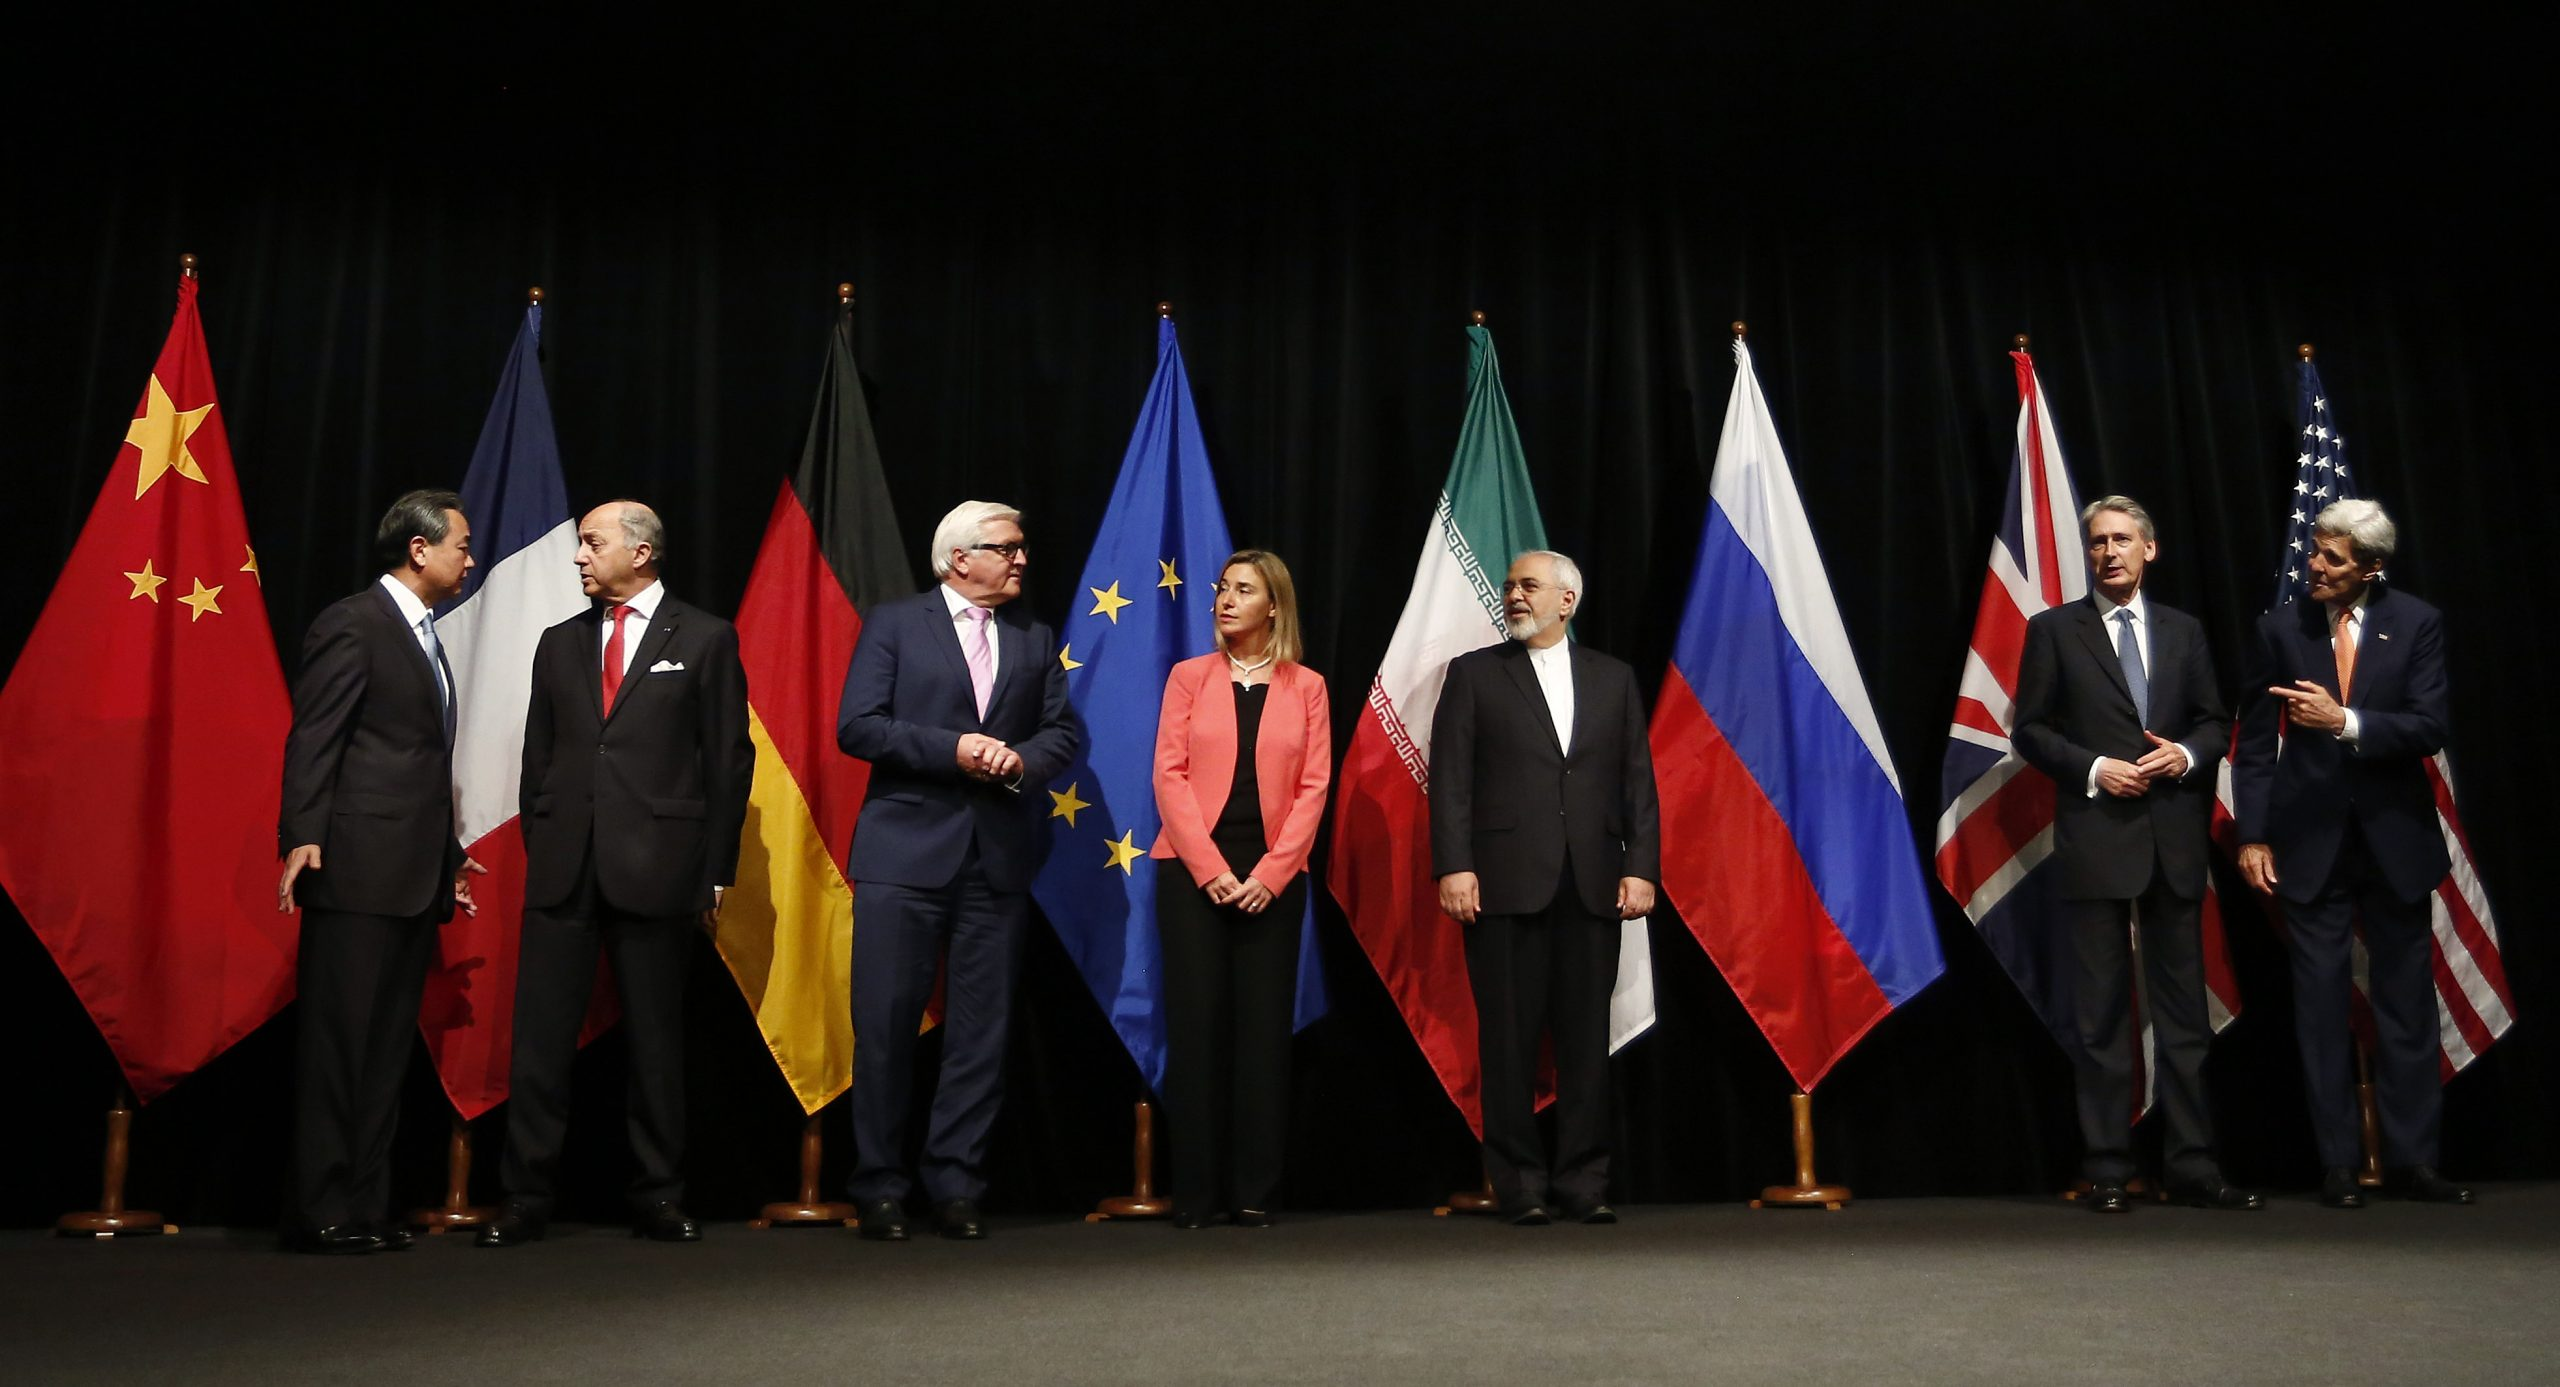 Spain requires Iran to comply with the nuclear commitments contemplated in the 2015 agreement